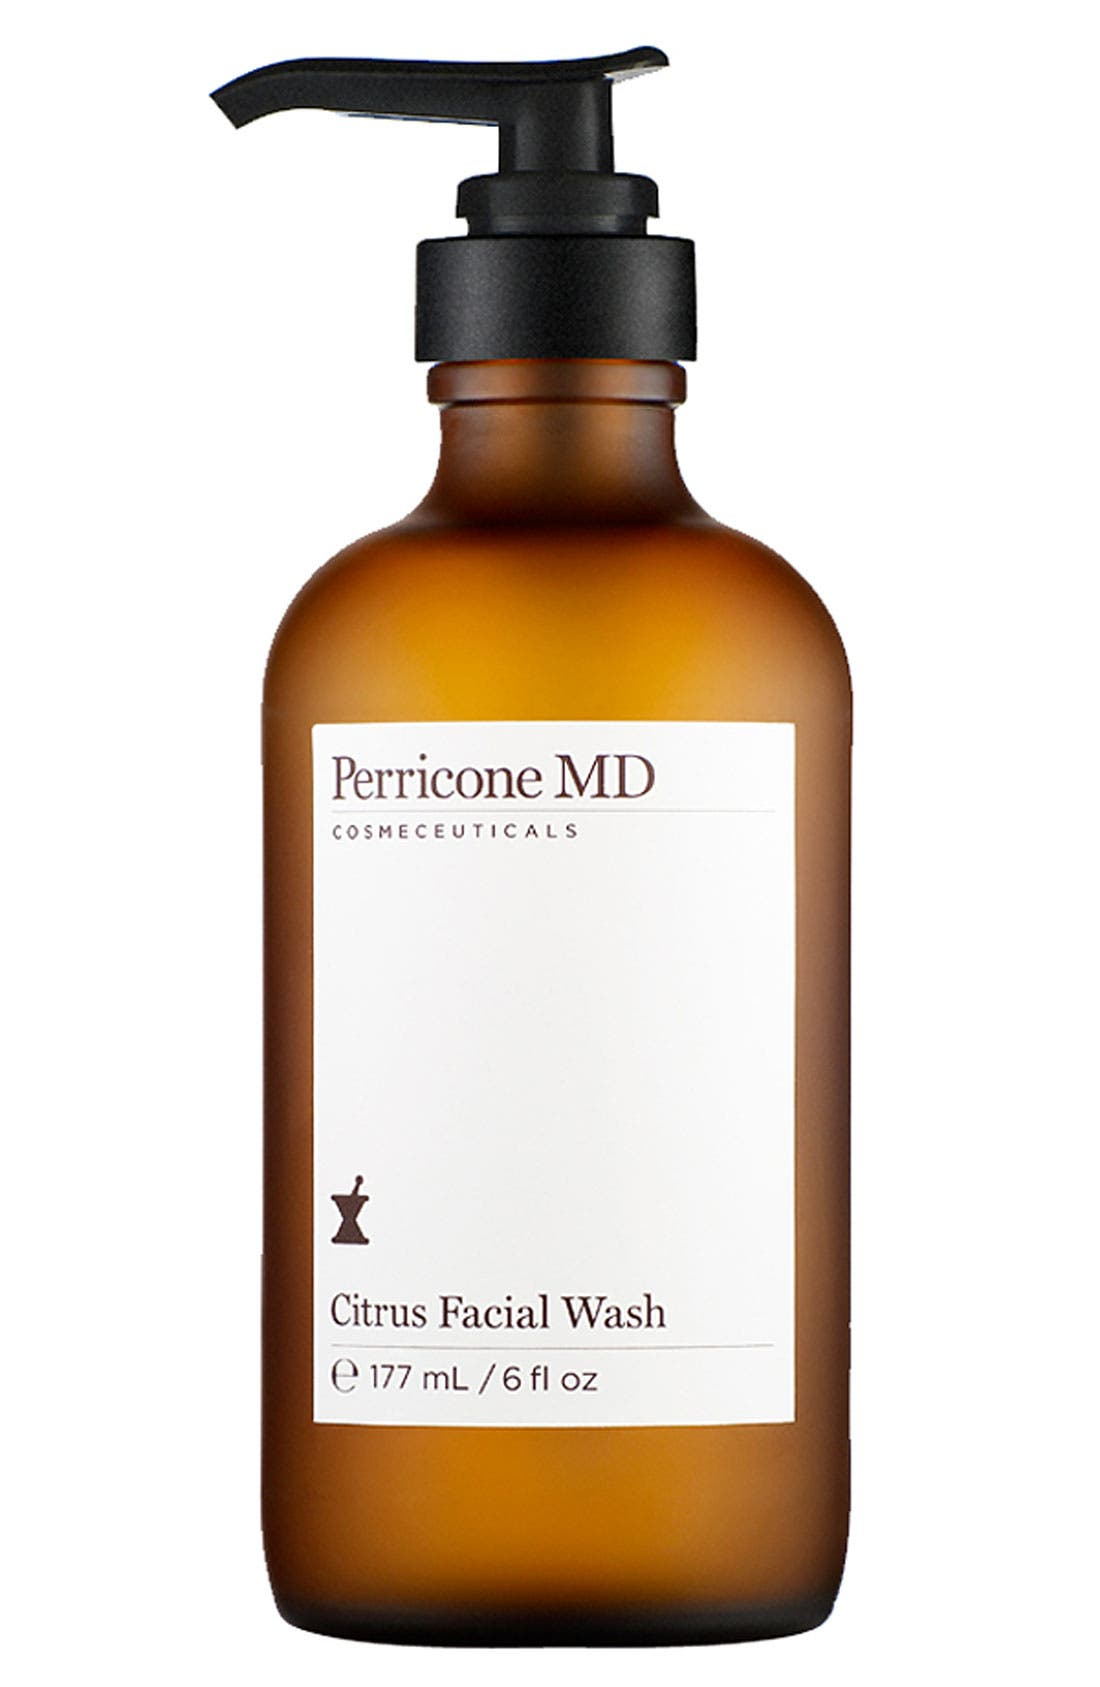 Perricone MD Citrus Facial Wash